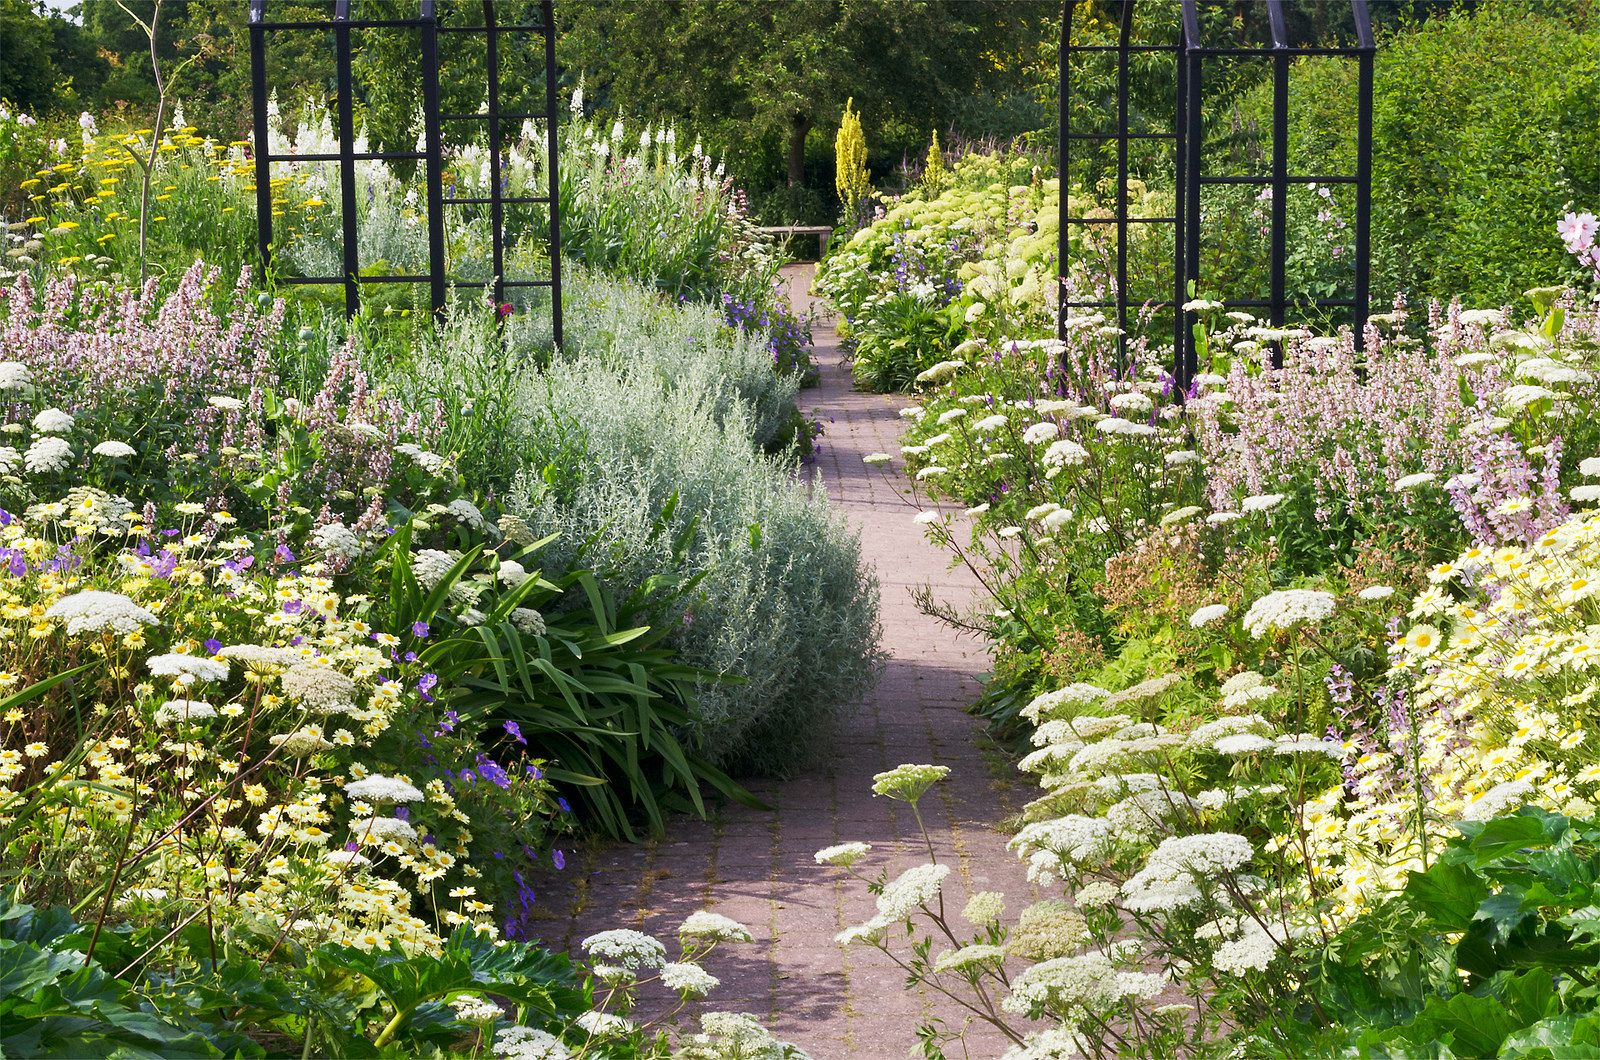 English Herbaceous Borders Rhs Wisley Gardens Uk 4 Of 50 Architectural Plants Herbaceous Border Garden History